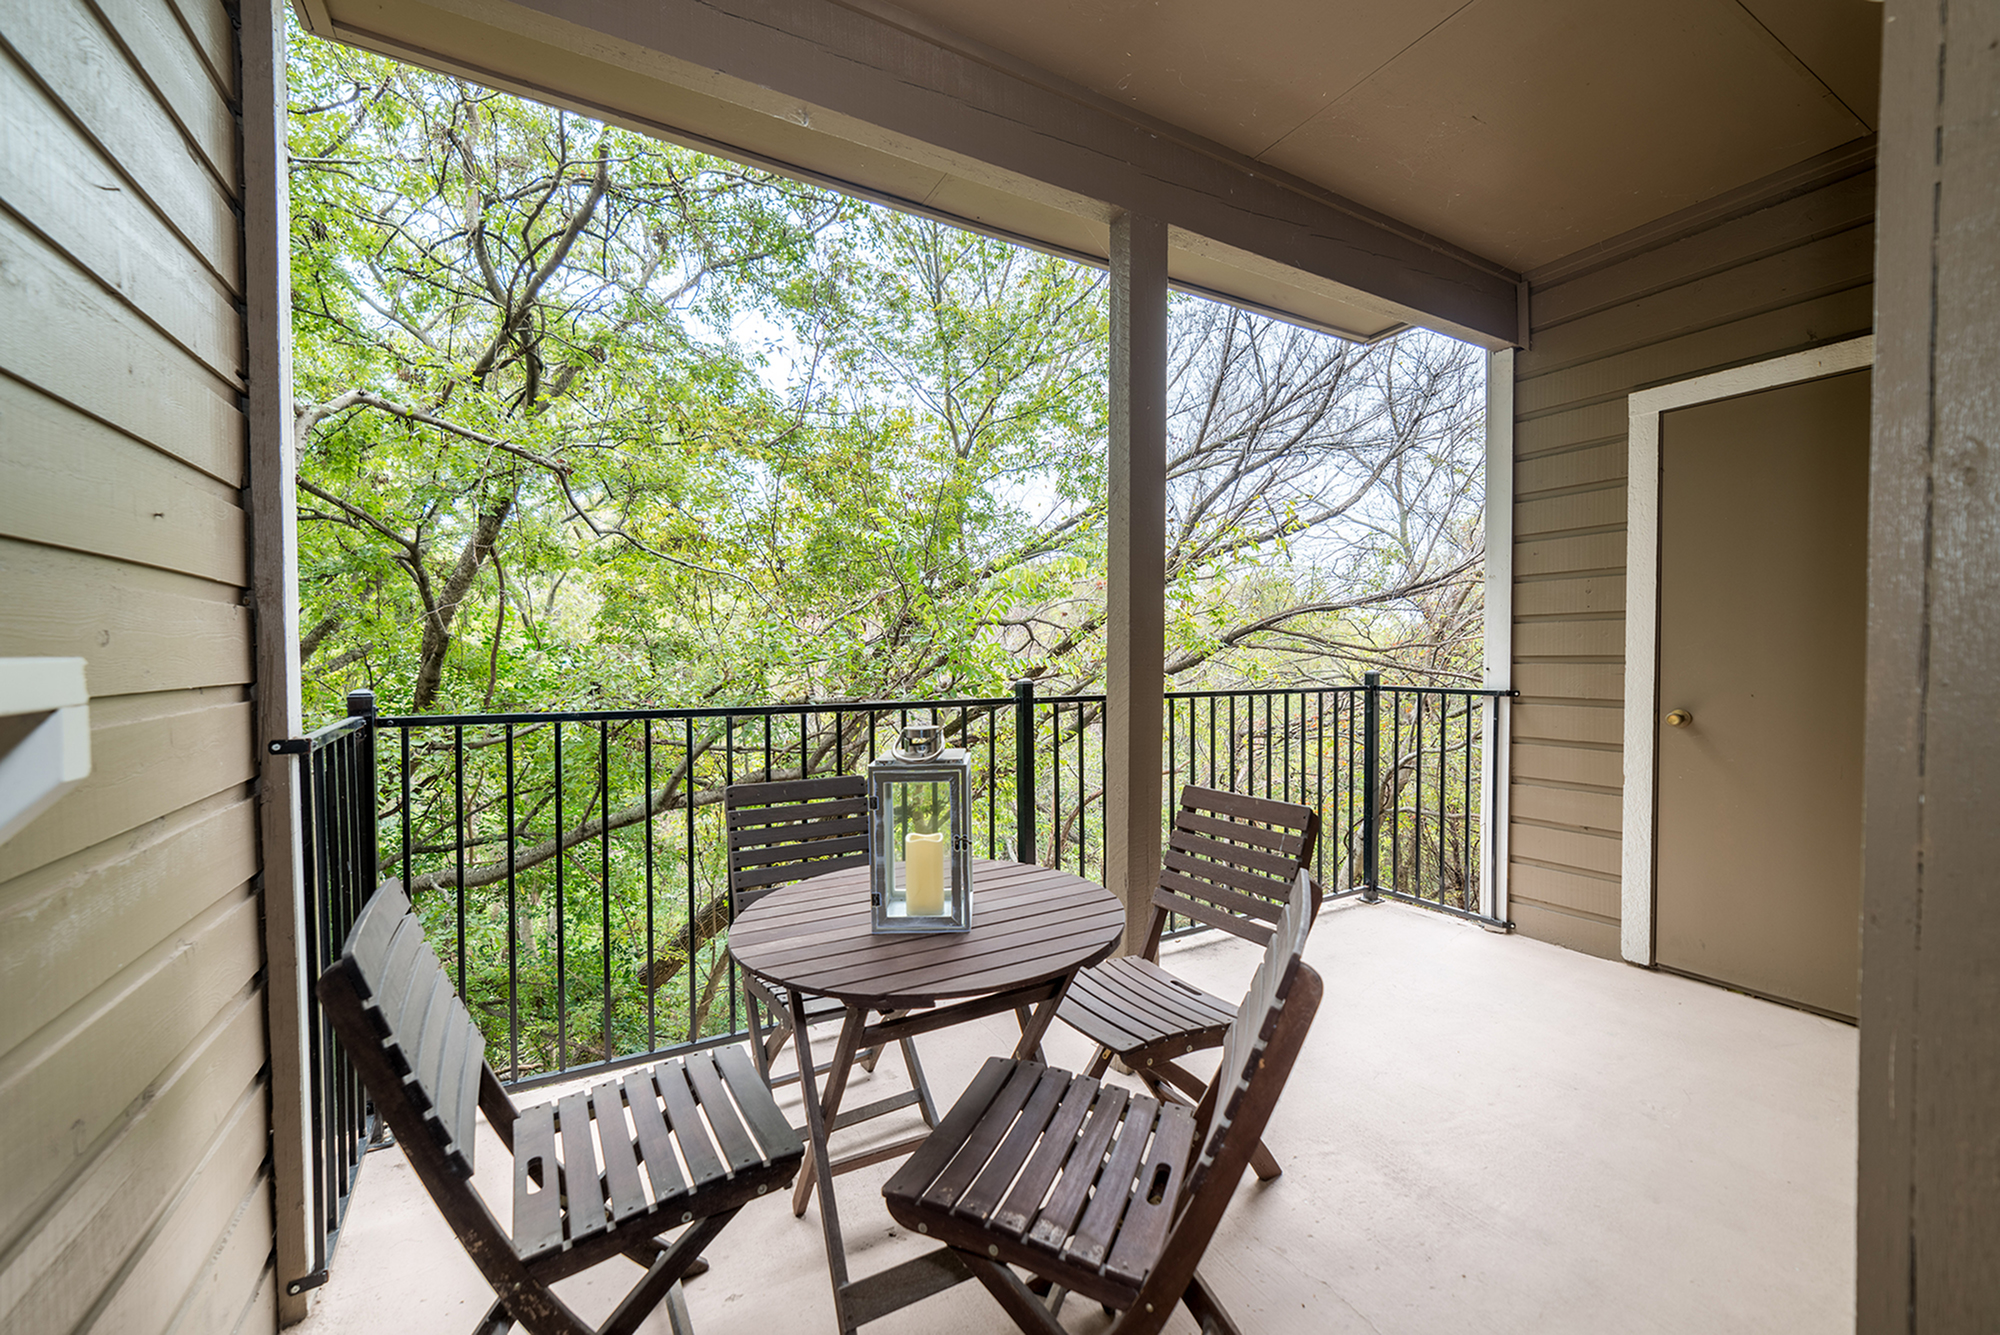 Image of Private Balconies & Patios for High Oaks Apartment Homes